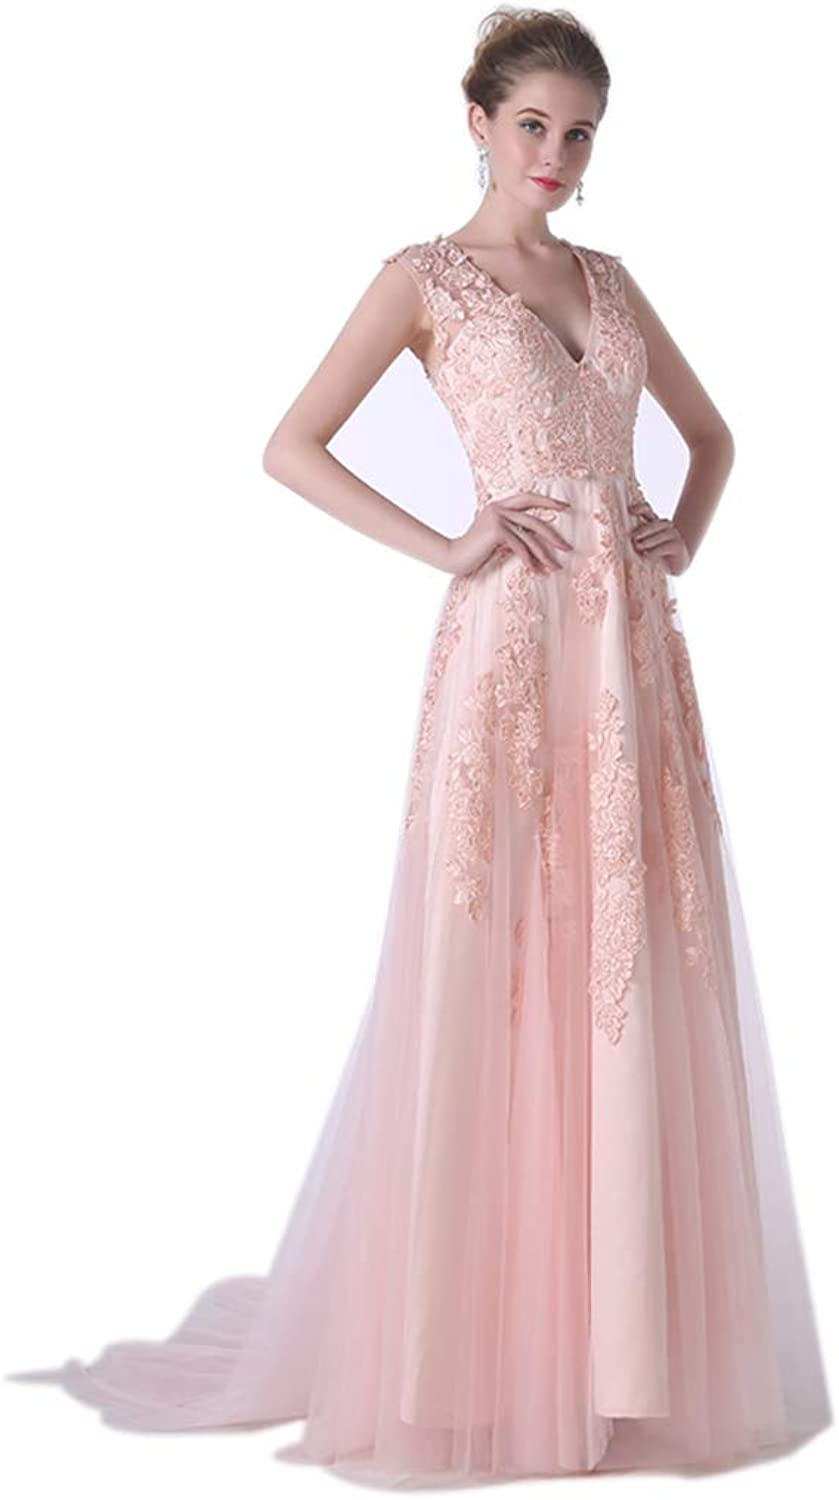 Quintion Norris Women's Sweet Sleeveless vNeck Long Evening Dress Formal Party Prom Gown